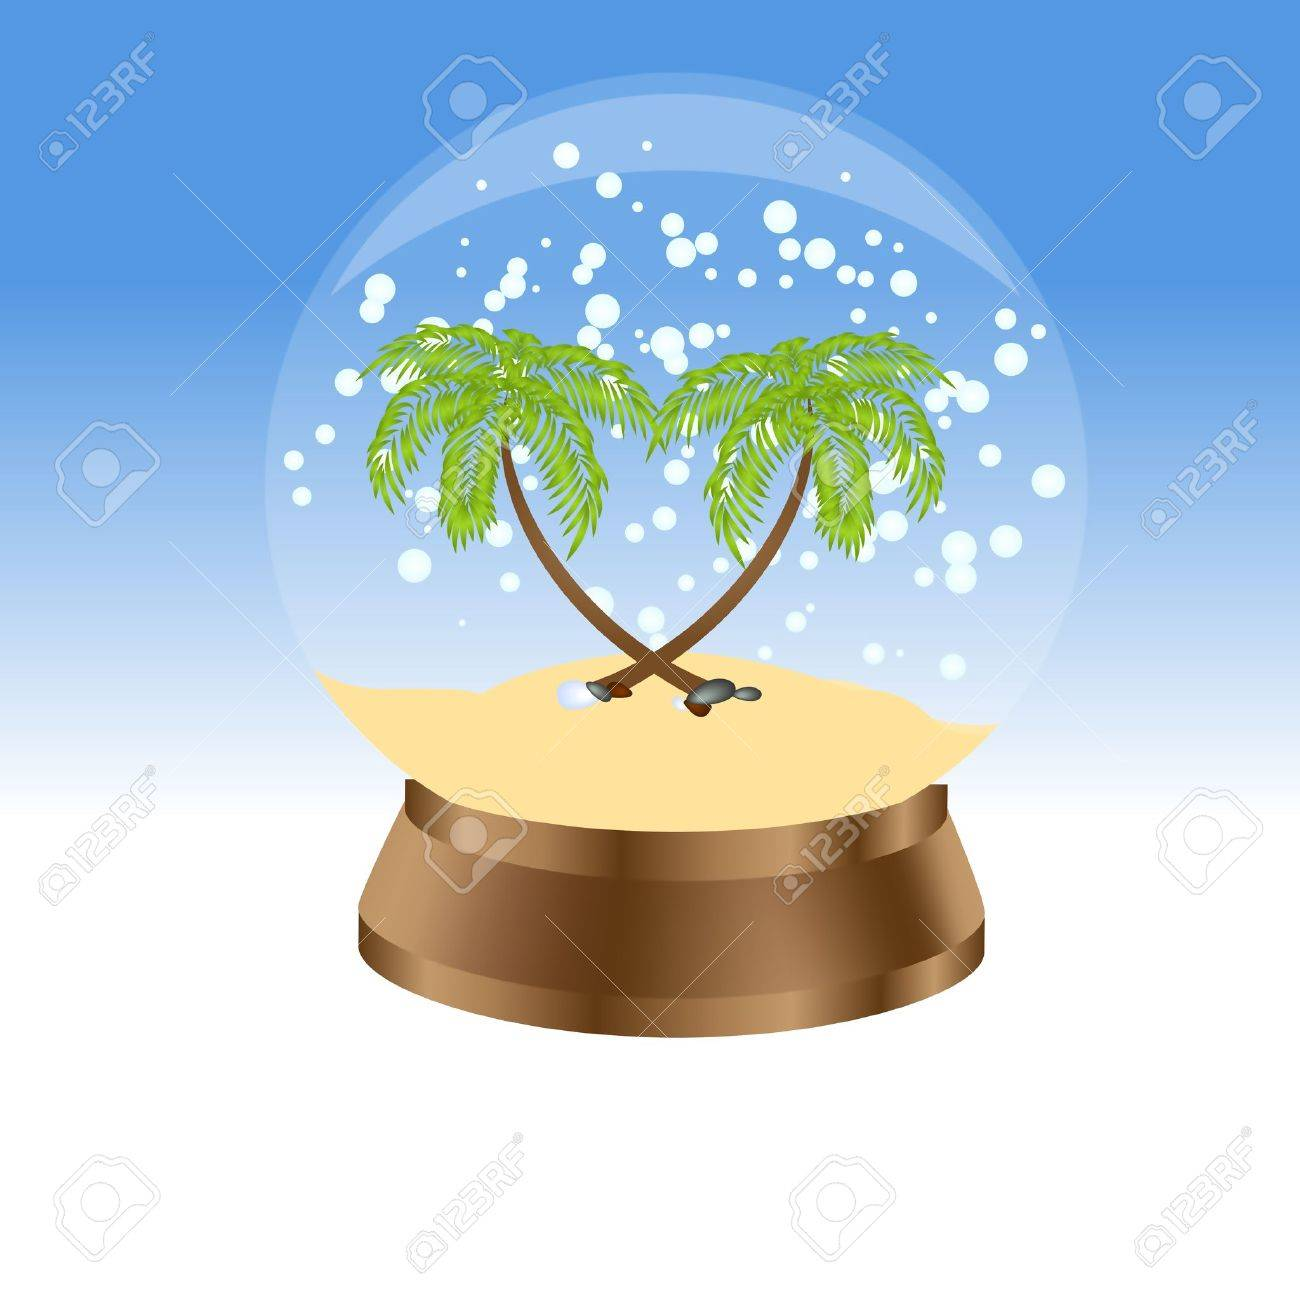 Snow globe with palm trees. Vector illustration. Stock Vector - 10998808